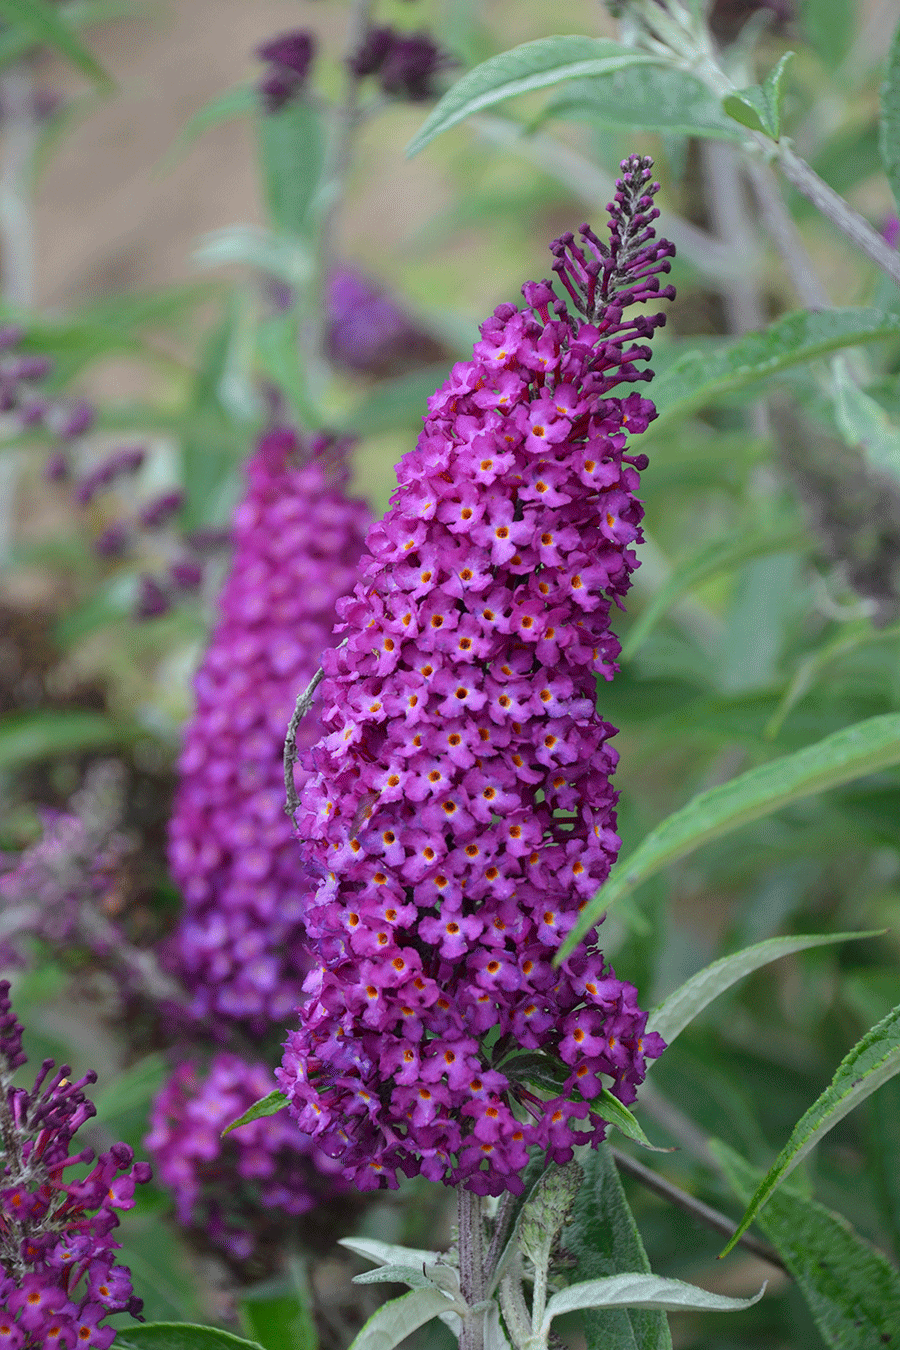 By midsummer, the branches of the 'Magenta Munchkin' butterfly bush will be bobbing up and down in the wind. (Photo by Walters Gardens, Inc.)